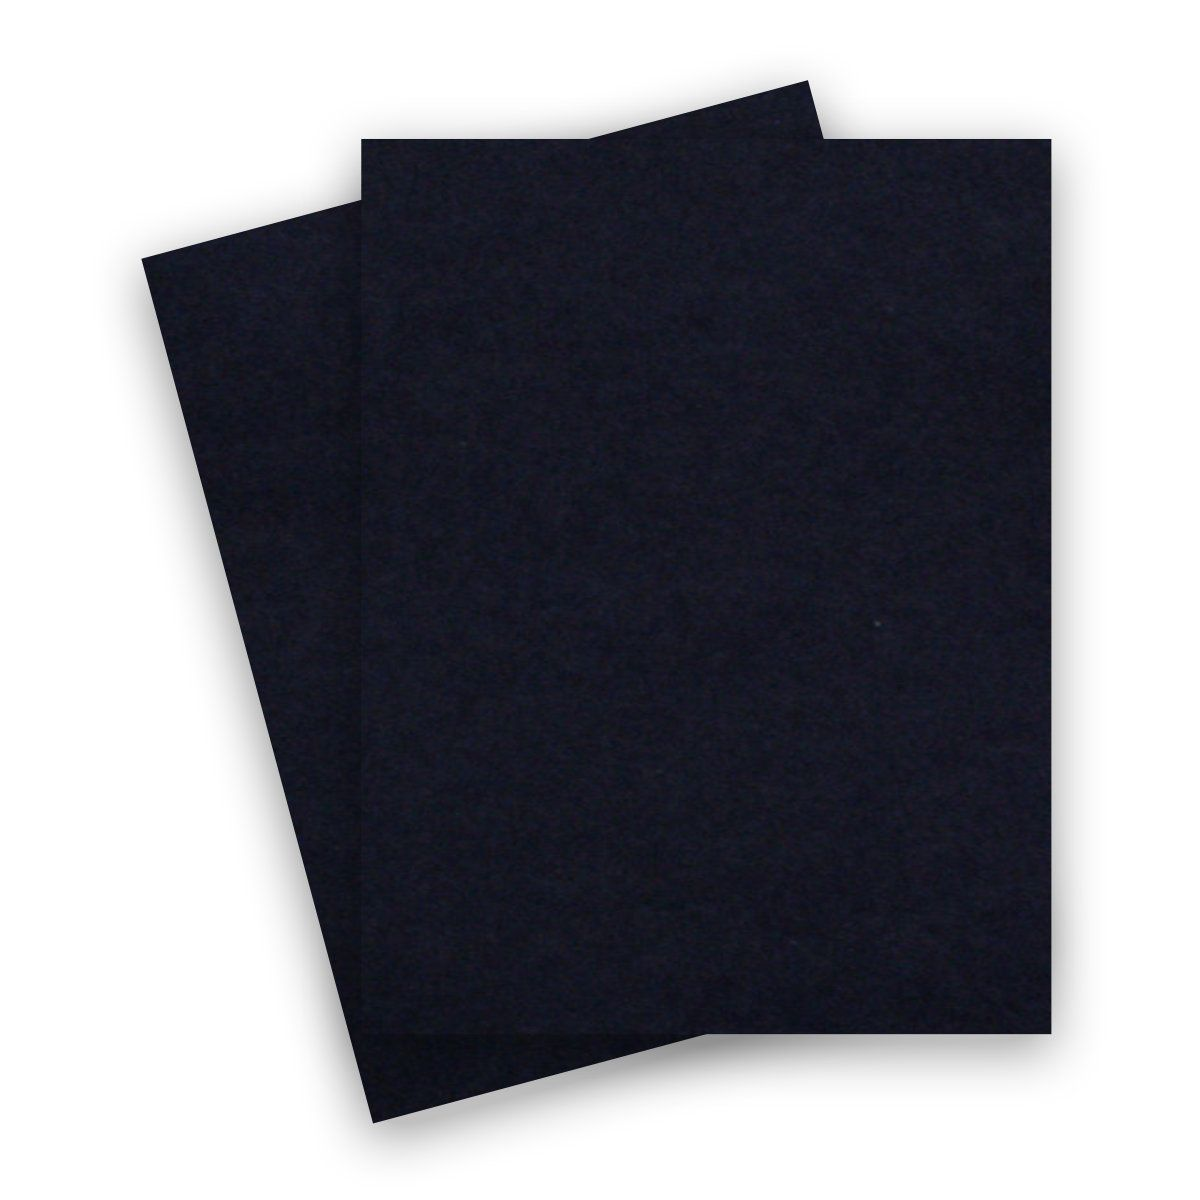 Remake Black Midnight 8 5x11 Lightweight Card Stock Paper 65lb Cover 180gsm 25 Pk In 2021 Cardstock Paper Luxury Paper Paper